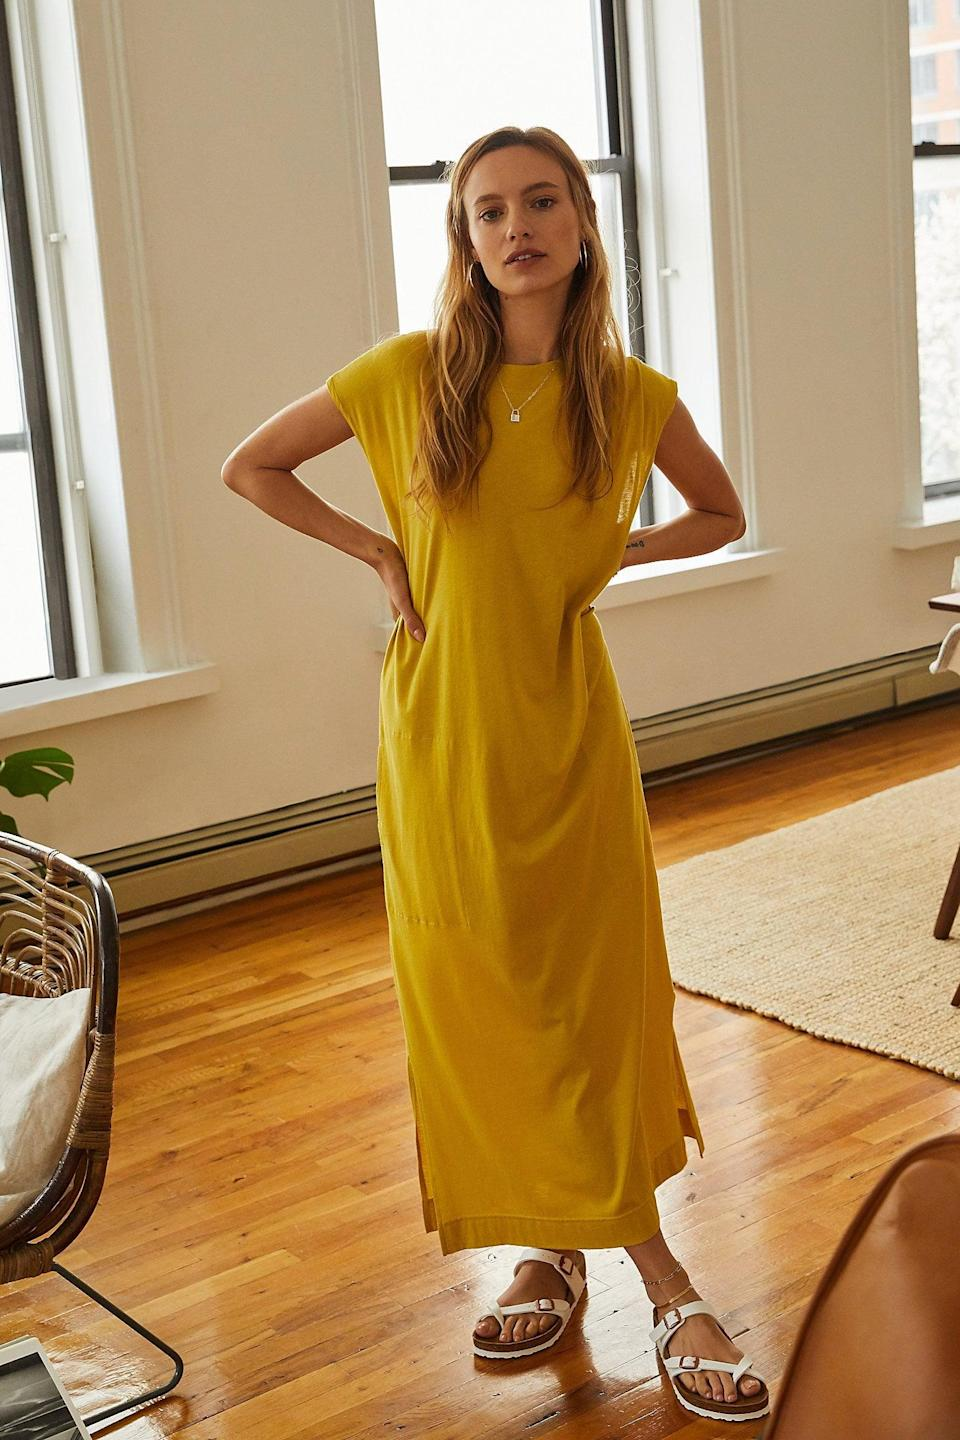 "<p>This <a href=""https://www.popsugar.com/buy/All-Day-Long-Midi-T-Shirt-Dress-571537?p_name=All%20Day%20Long%20Midi%20T-Shirt%20Dress&retailer=freepeople.com&pid=571537&price=50&evar1=fab%3Aus&evar9=47449058&evar98=https%3A%2F%2Fwww.popsugar.com%2Ffashion%2Fphoto-gallery%2F47449058%2Fimage%2F47449380%2FAll-Day-Long-Midi-T-Shirt-Dress&list1=shopping%2Cdresses%2Cspring%20fashion%2Csummer%20fashion%2Cfashion%20shopping&prop13=mobile&pdata=1"" class=""link rapid-noclick-resp"" rel=""nofollow noopener"" target=""_blank"" data-ylk=""slk:All Day Long Midi T-Shirt Dress"">All Day Long Midi T-Shirt Dress</a> ($50) is one of our faves.</p>"